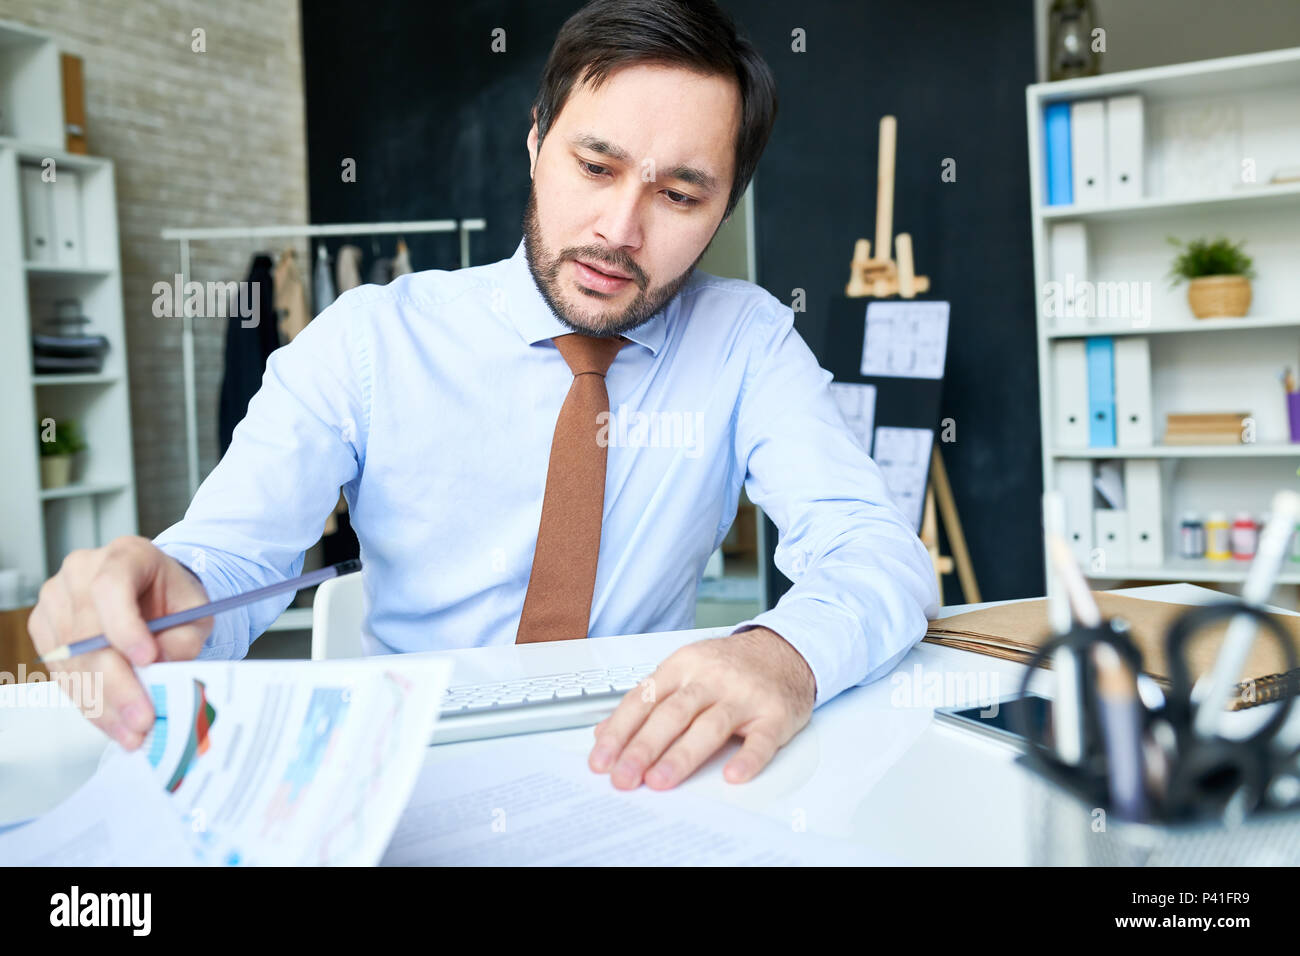 Businessman working avec papiers in office Photo Stock